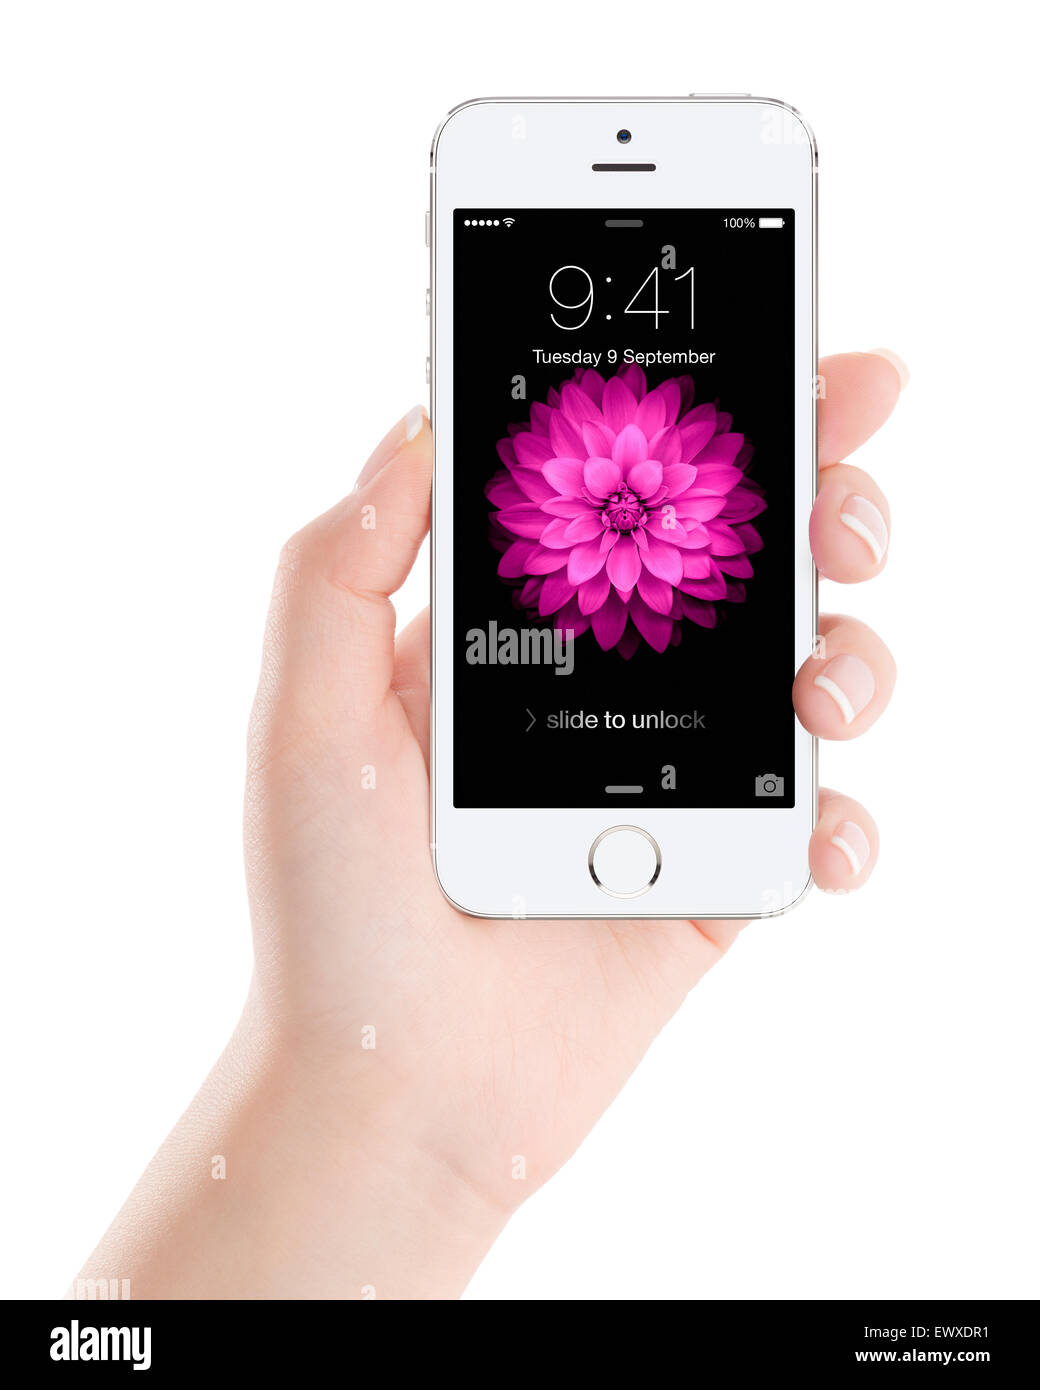 Varna, Bulgaria - December 07, 2013: Female hand holding Apple Silver iPhone 5S with lock screen on the display, - Stock Image